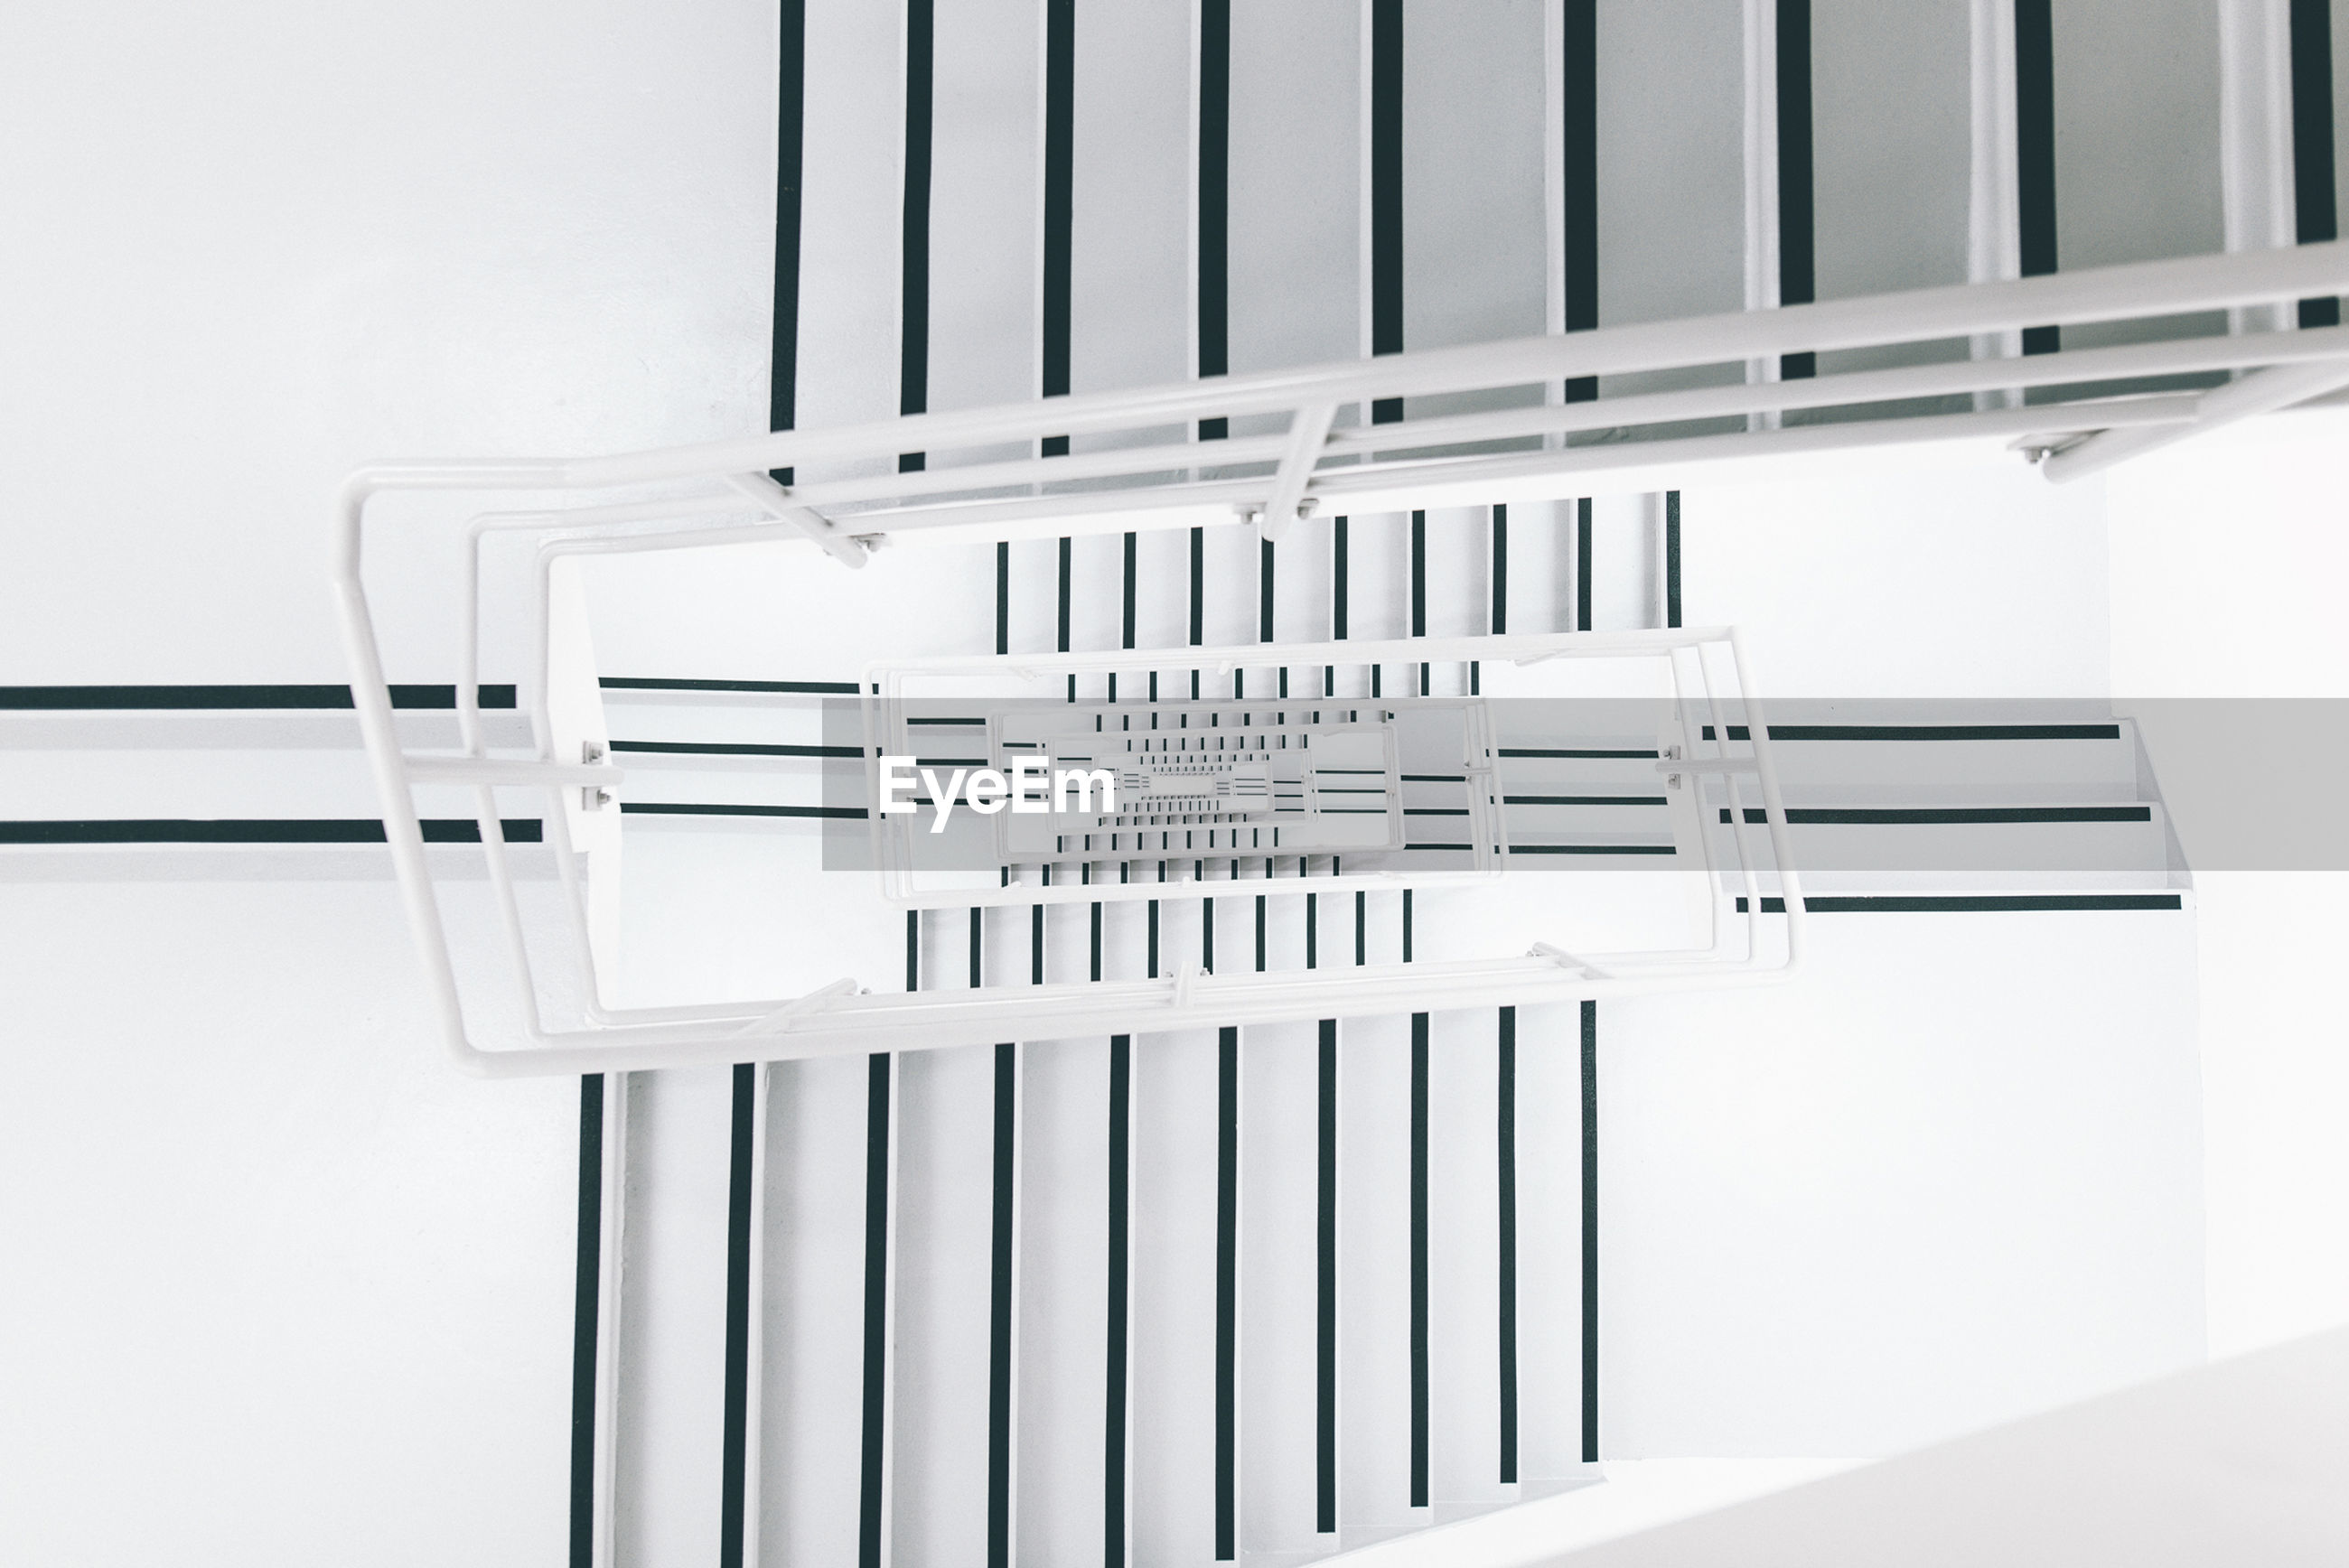 Directly below shot of staircases in modern building